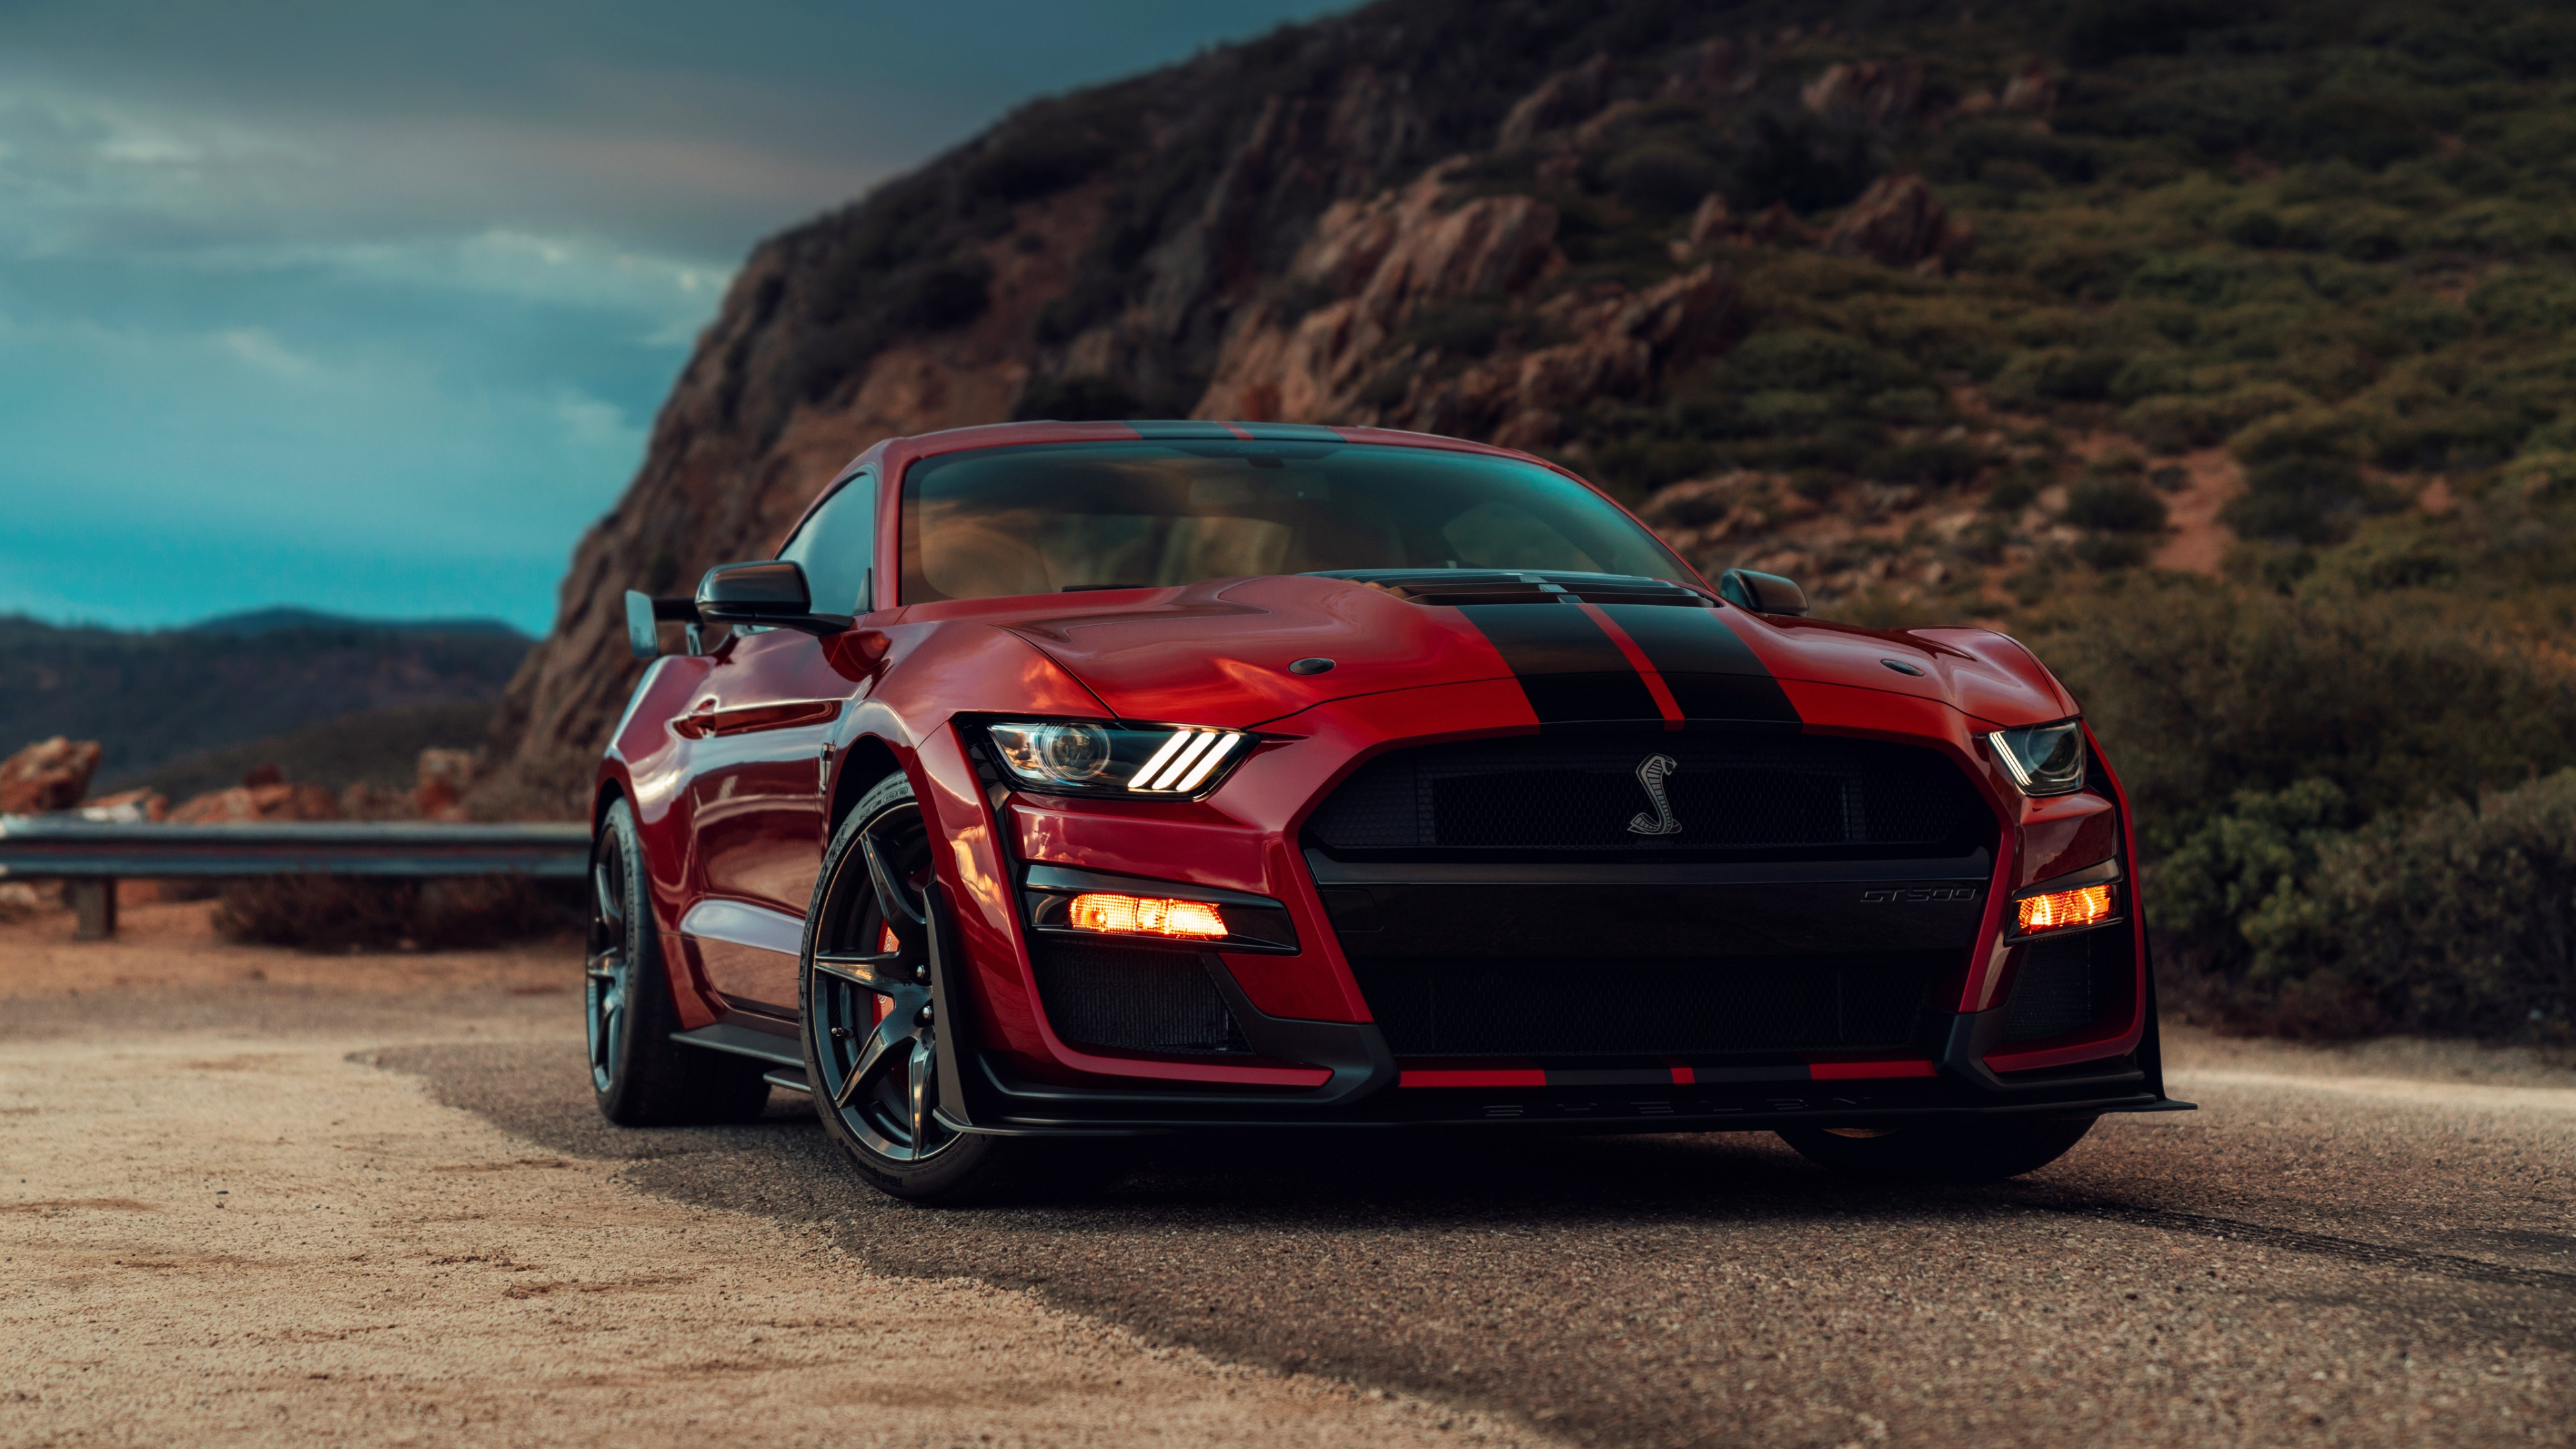 Обои Ford Mustang Shelby Gt500 2020 Cars 2019 Detroit